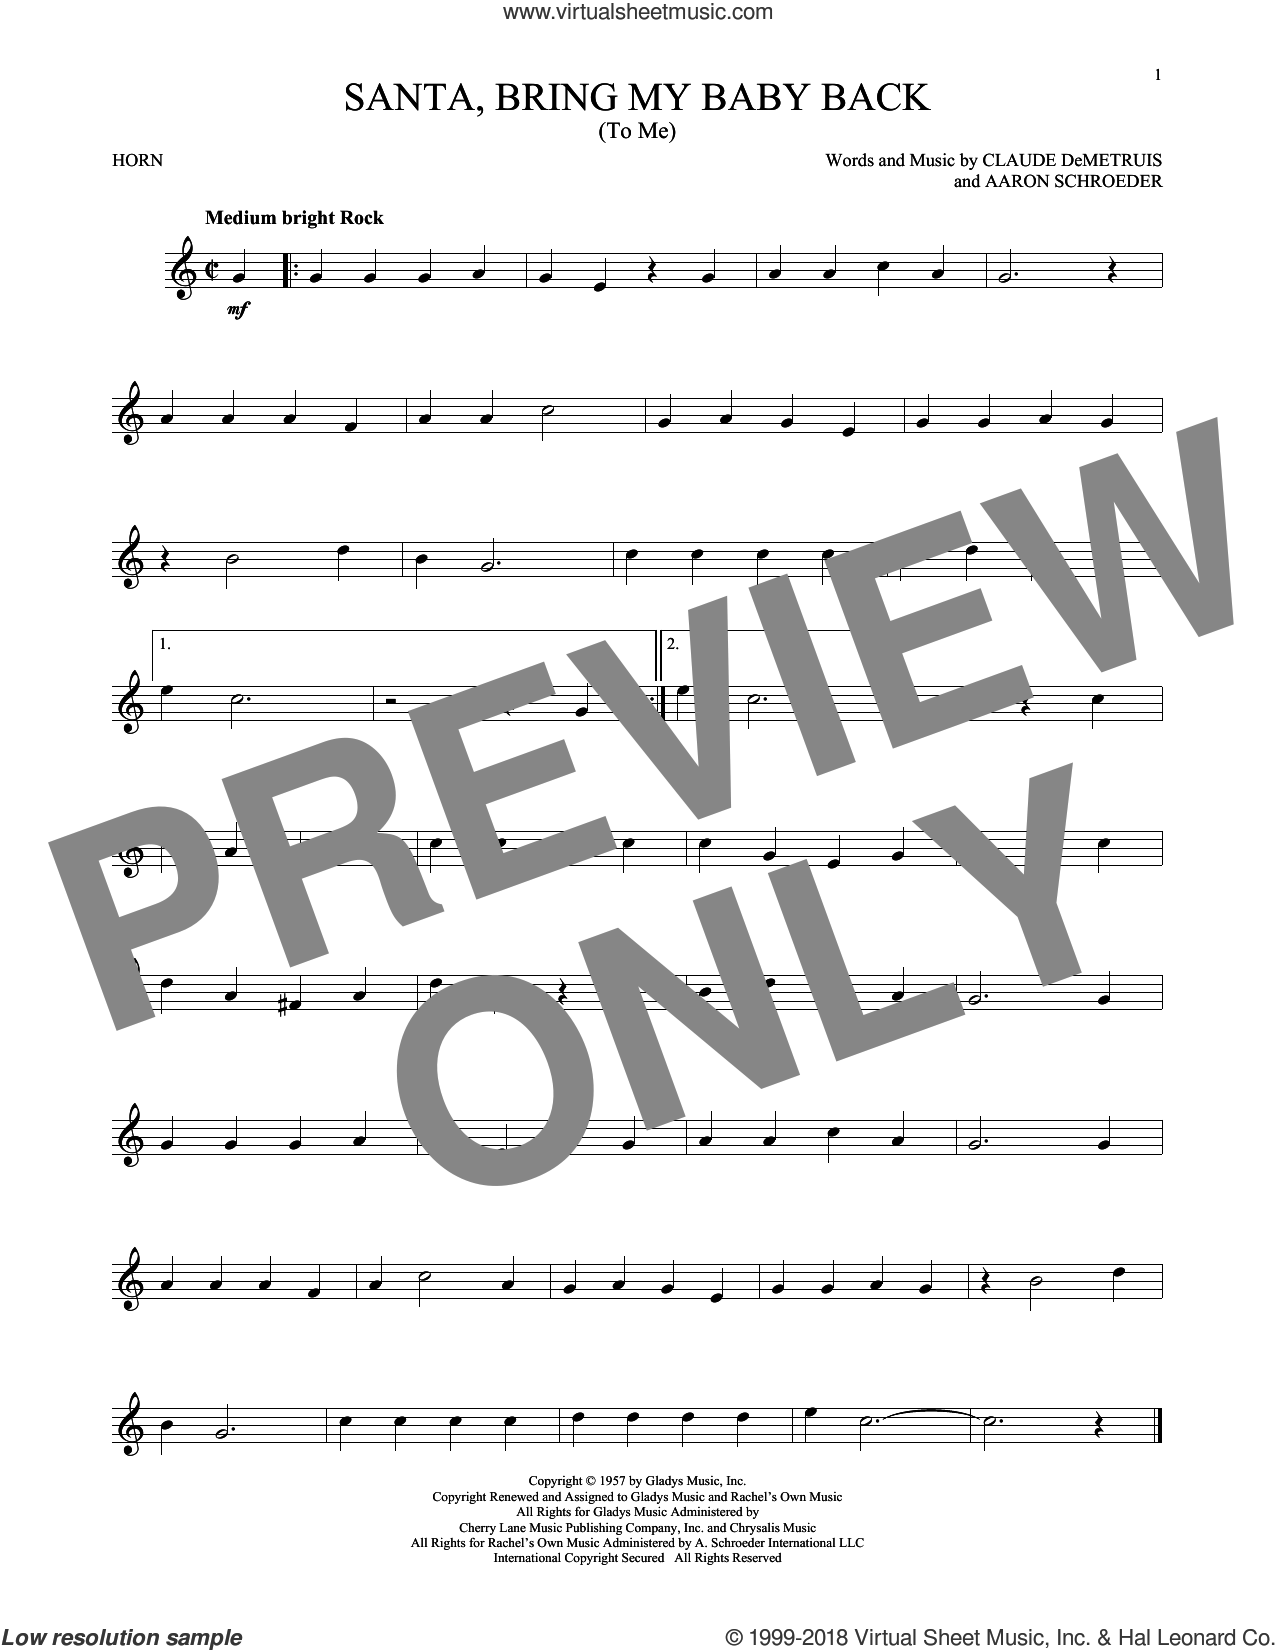 Santa, Bring My Baby Back (To Me) sheet music for horn solo by Elvis Presley, Aaron Schroeder and Claude DeMetruis, intermediate skill level